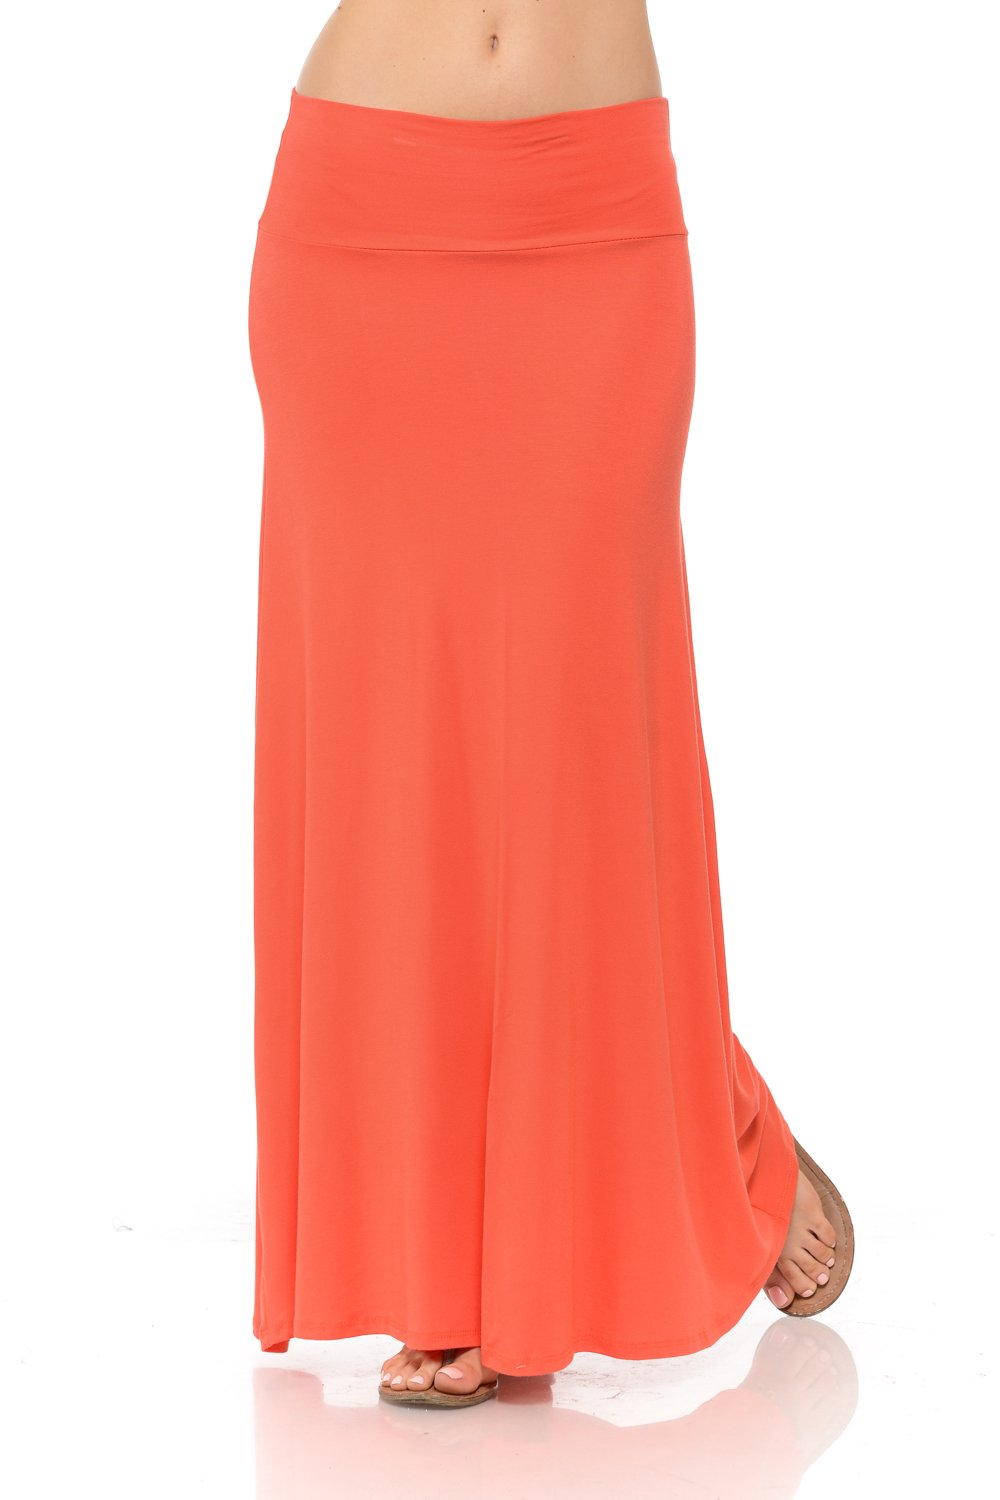 Shamaim Womens Fold Over Maxi Long Skirt Coral XXX-Large